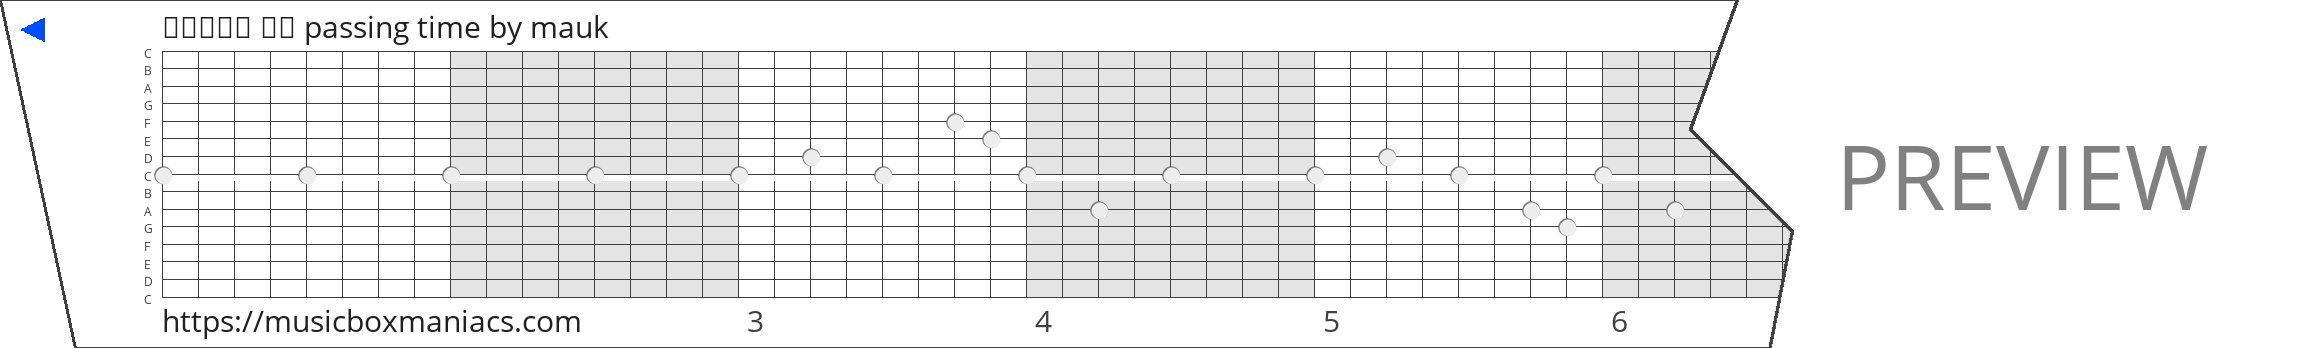 𝖢𝗅𝗈𝗇𝖾 𝗈𝖿 passing time 15 note music box paper strip